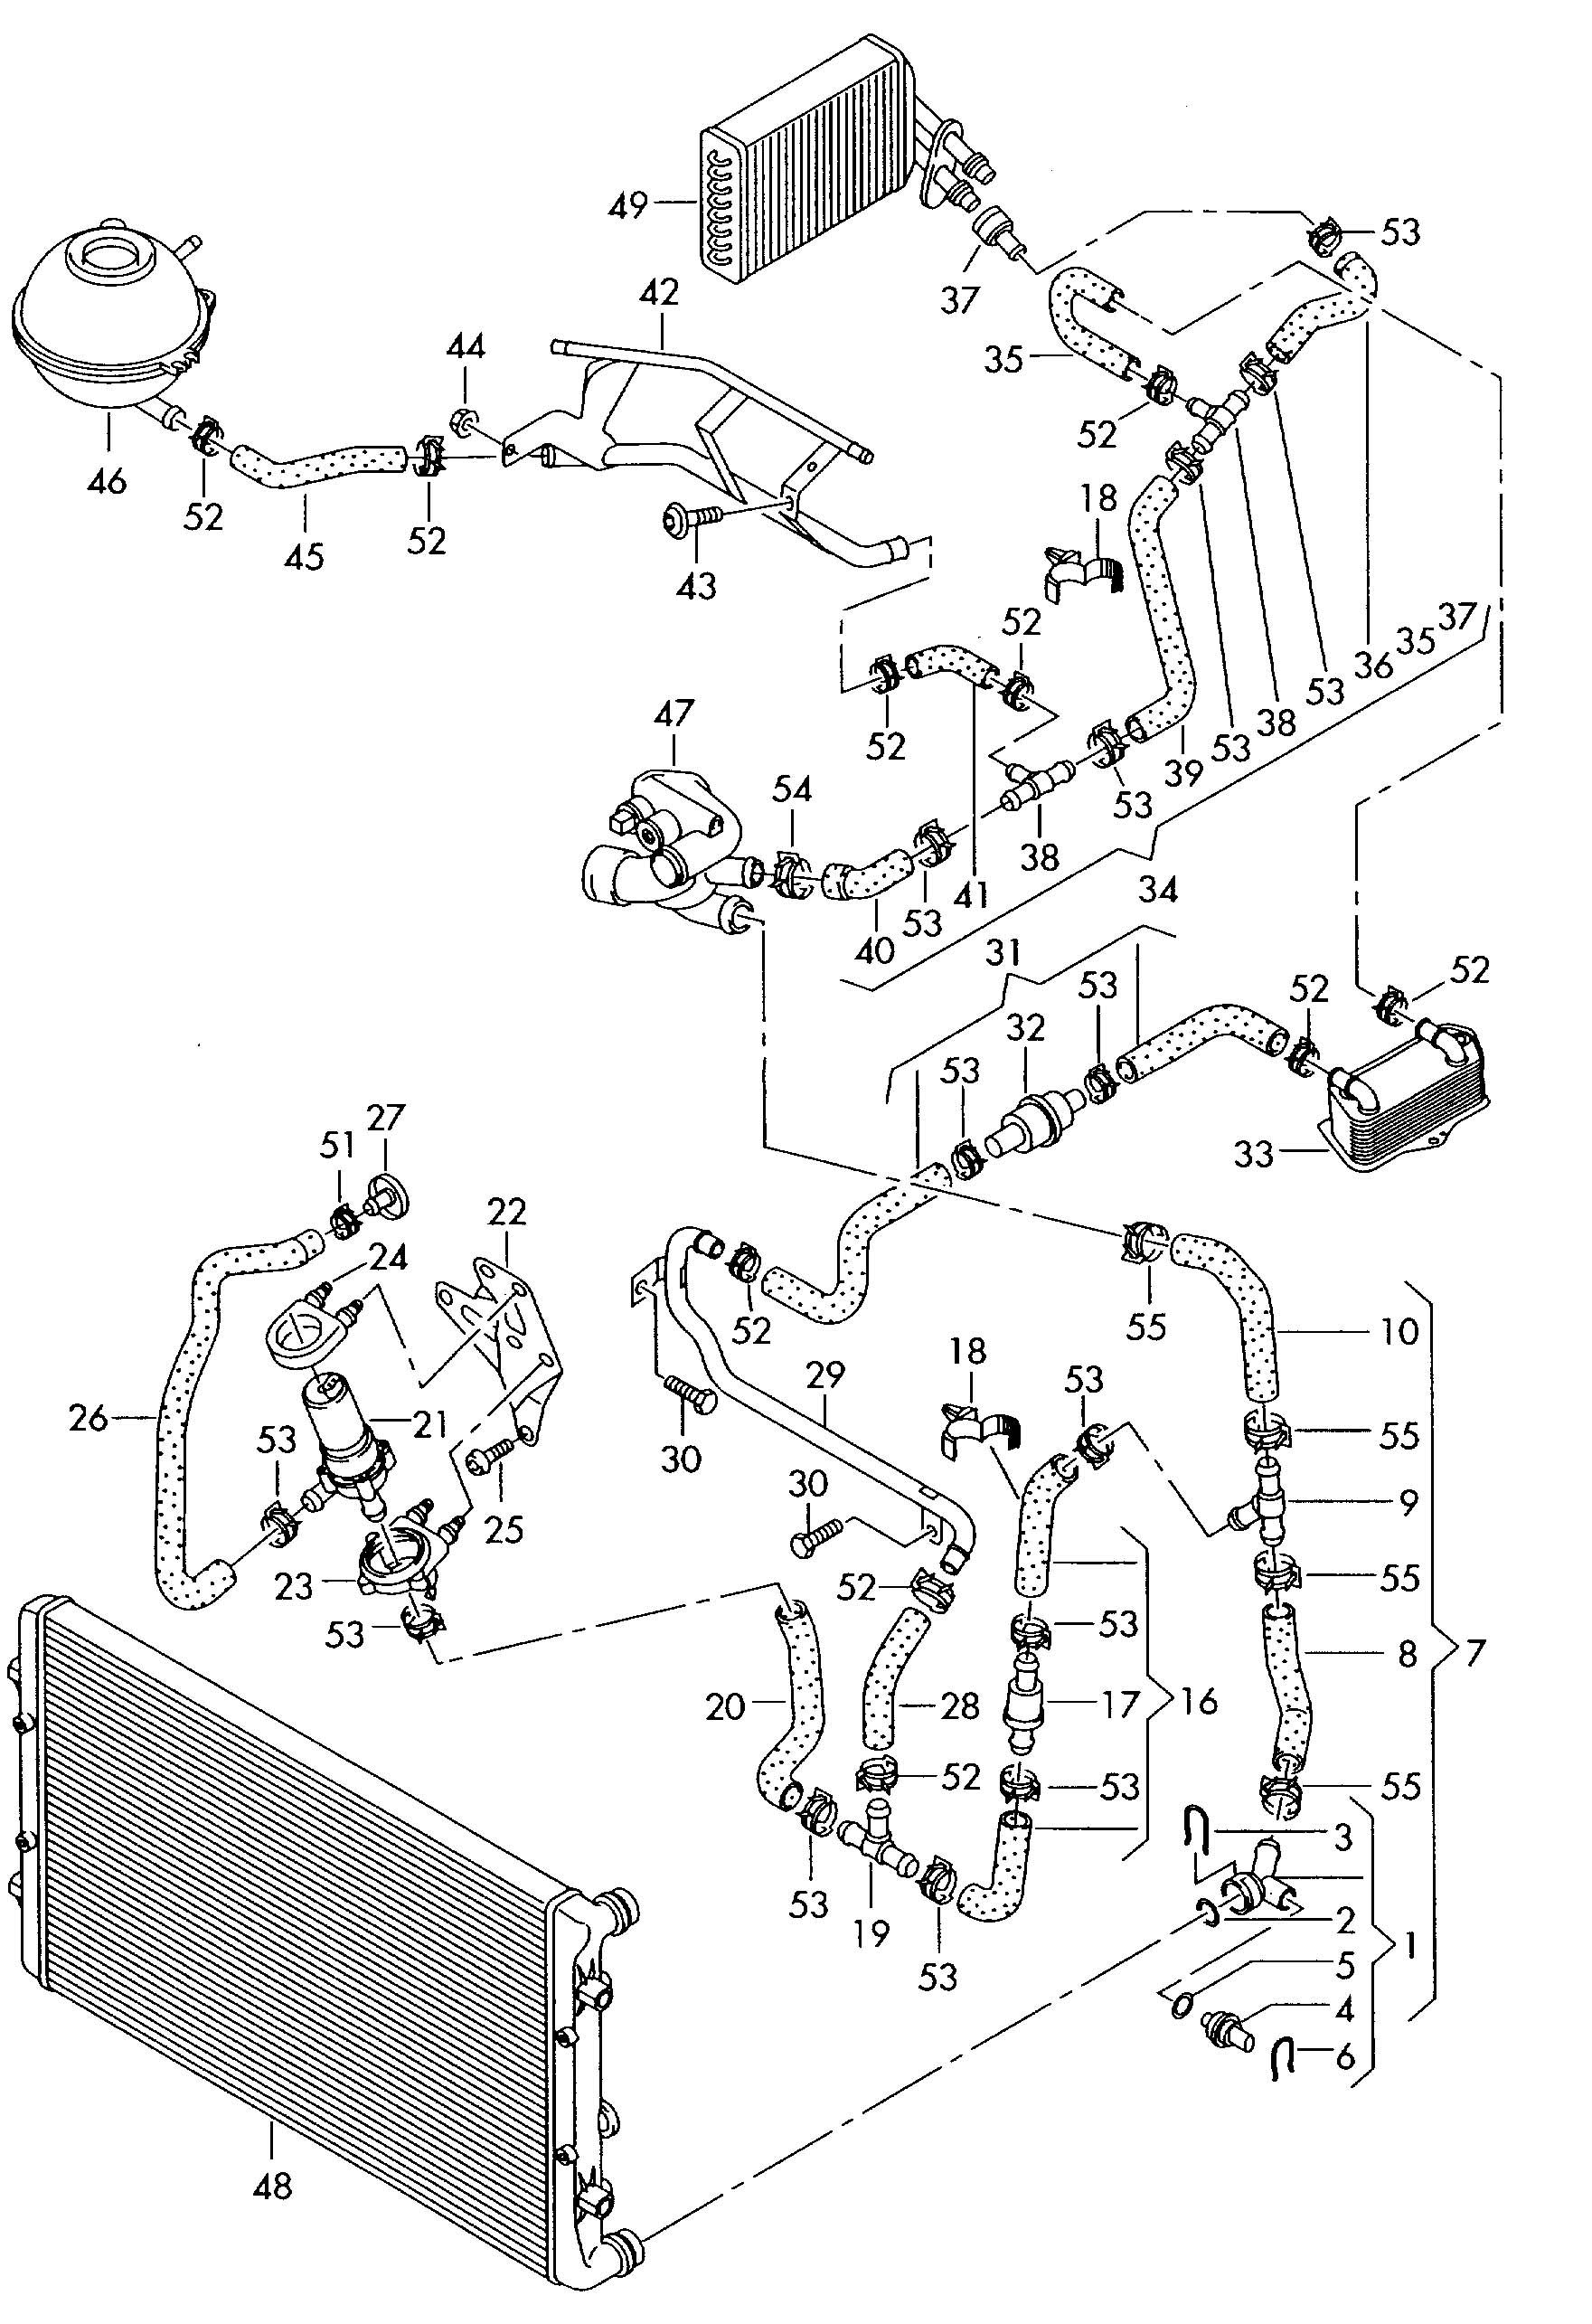 2000 audi a6 engine diagram cooling system dw 2173  audi cooling system diagram  dw 2173  audi cooling system diagram